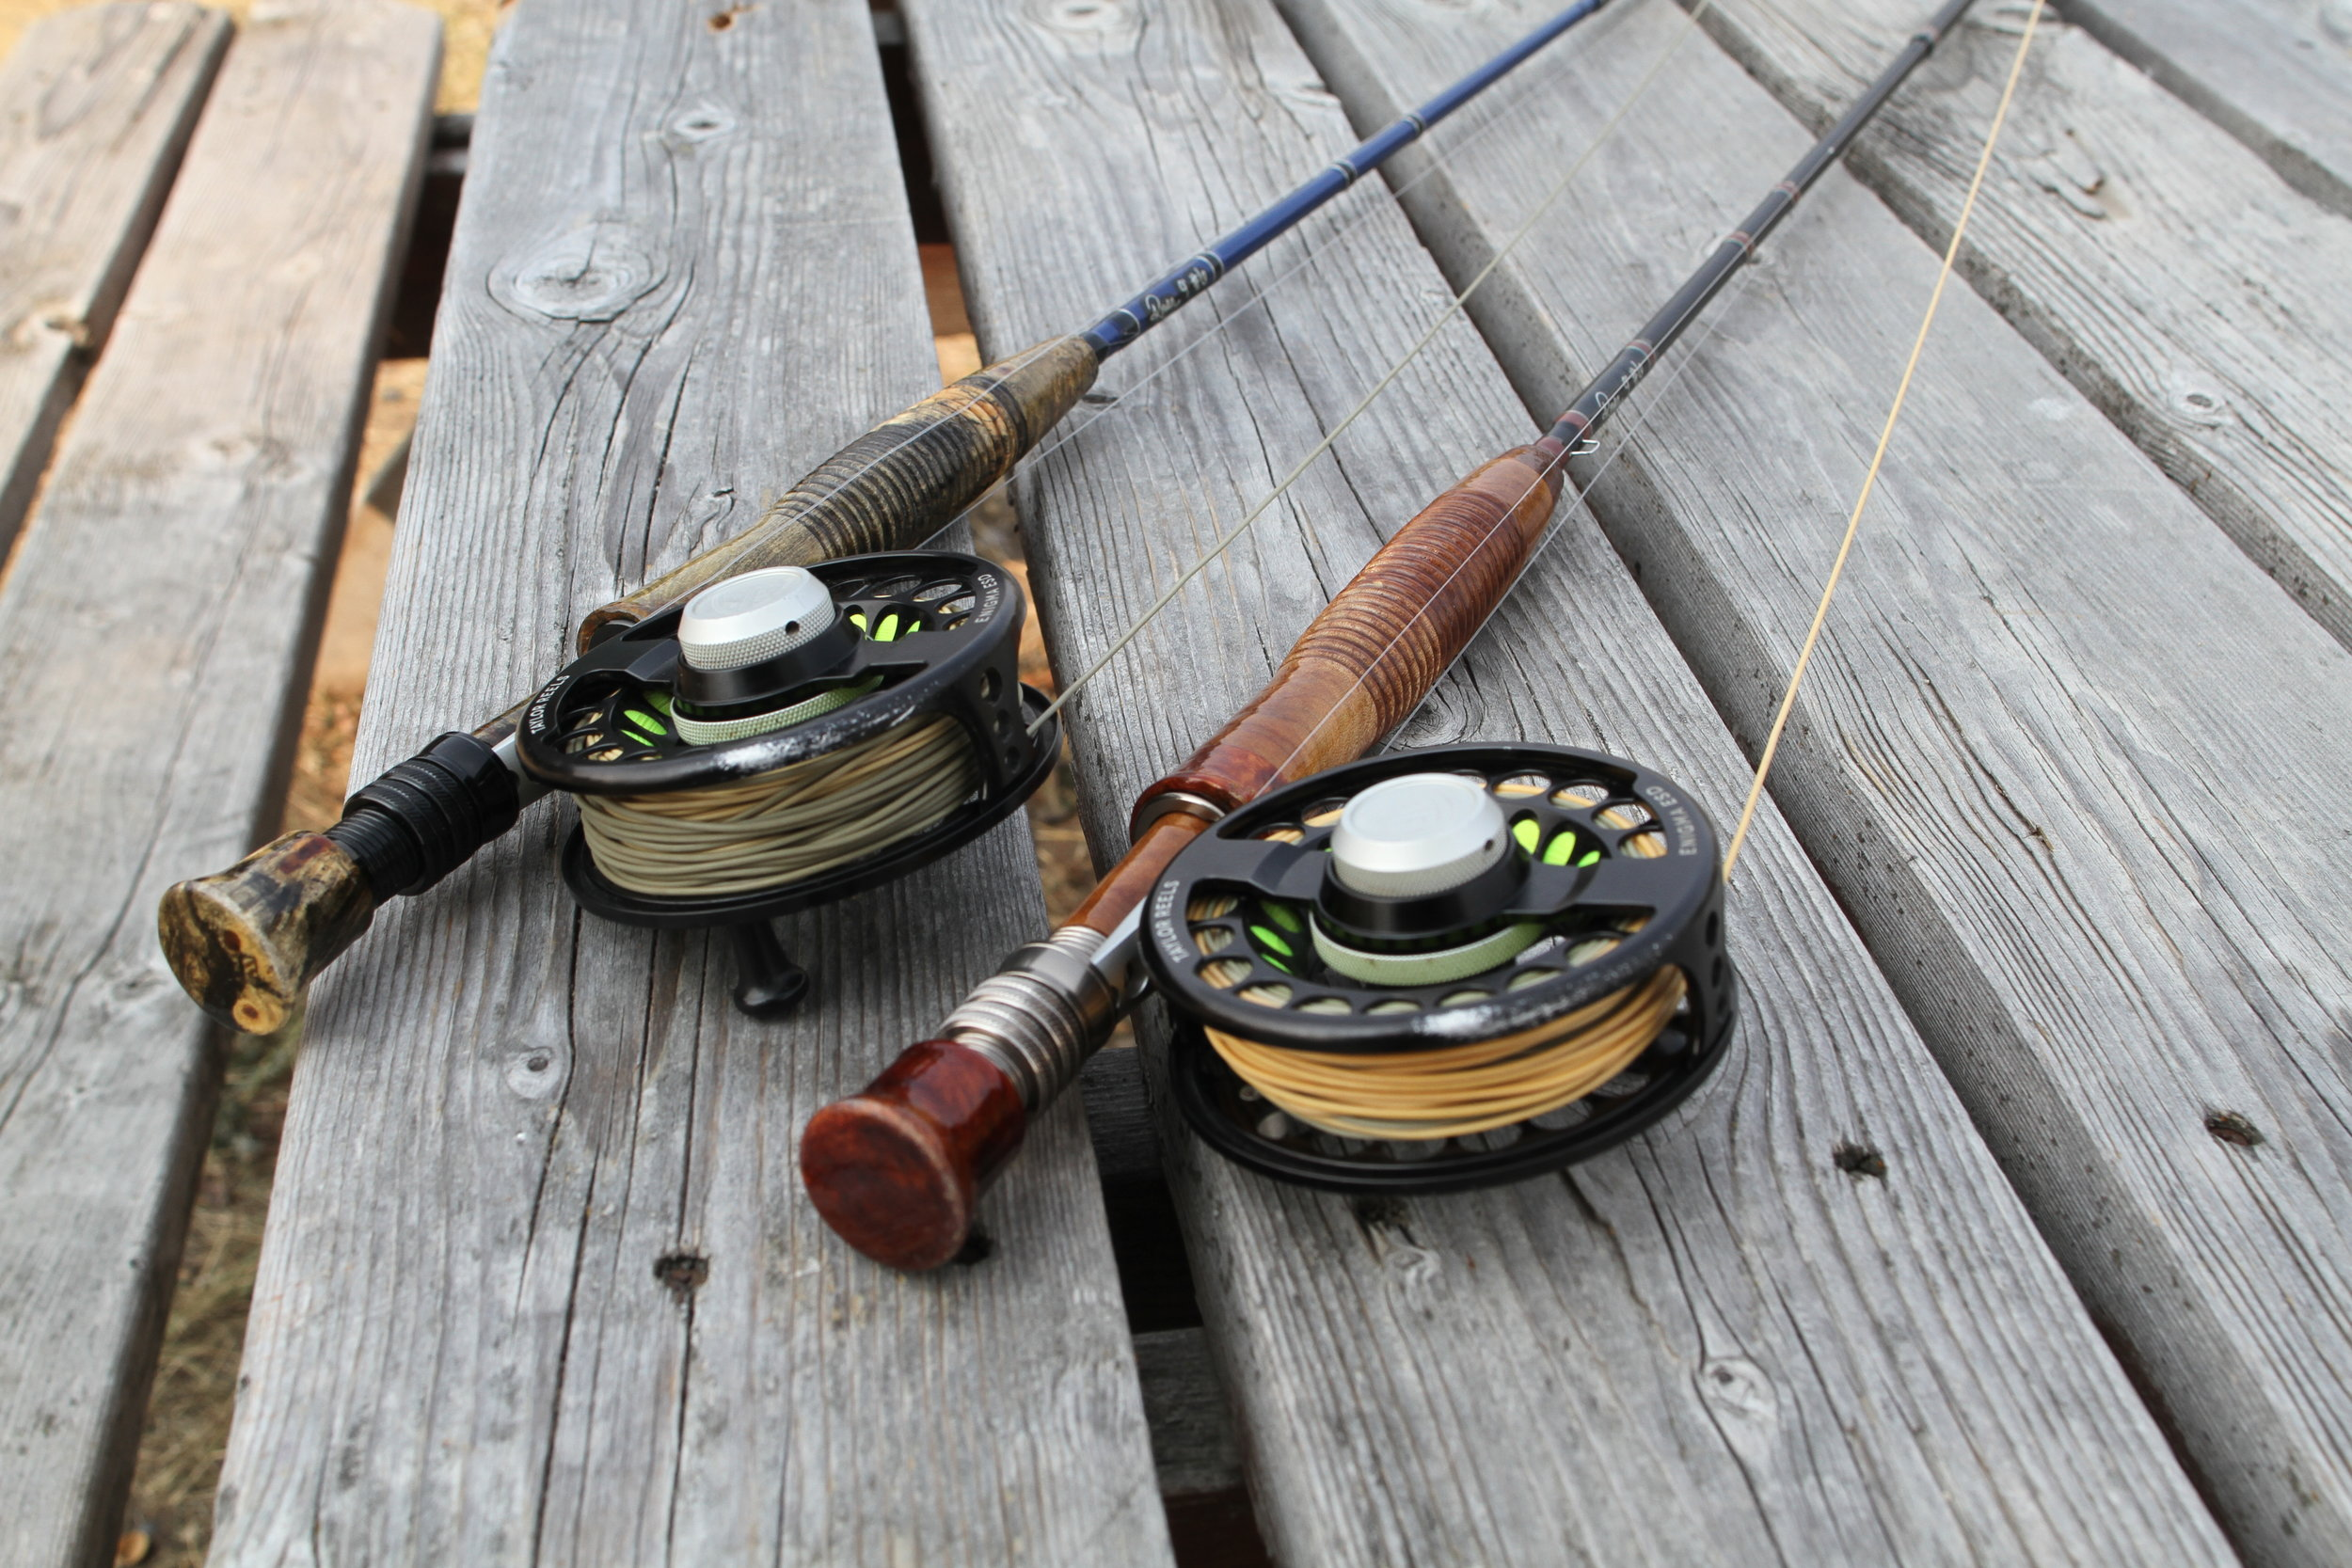 Start building your custom rod.